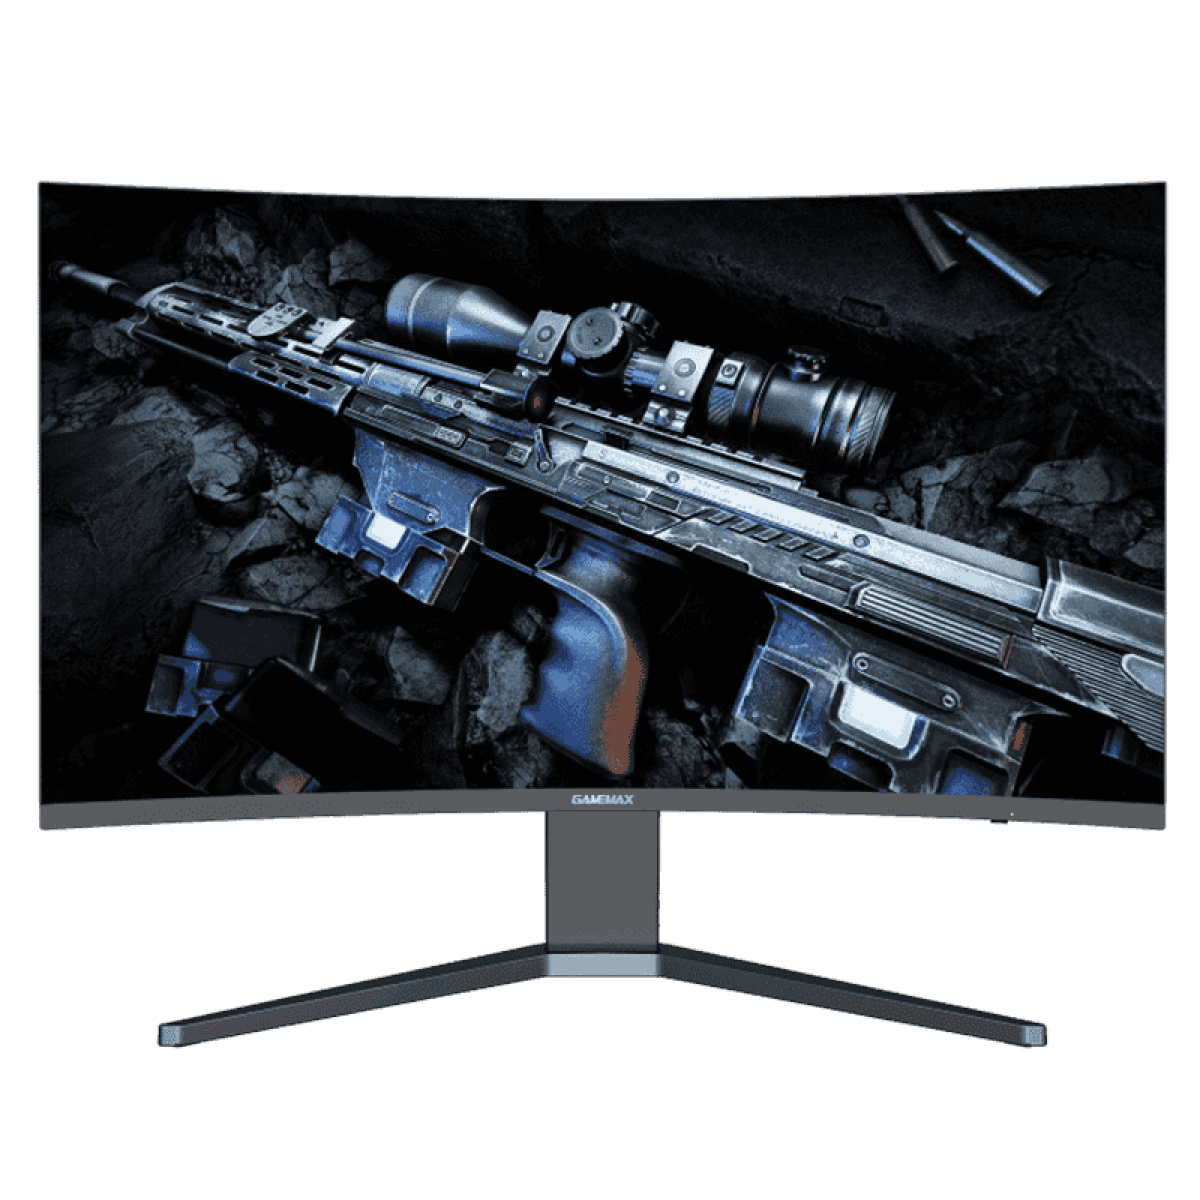 Monitor Gamer GameMax 27 Pol Curvo, WQHD, 165Hz, 1ms, Black, GMX27C165Q